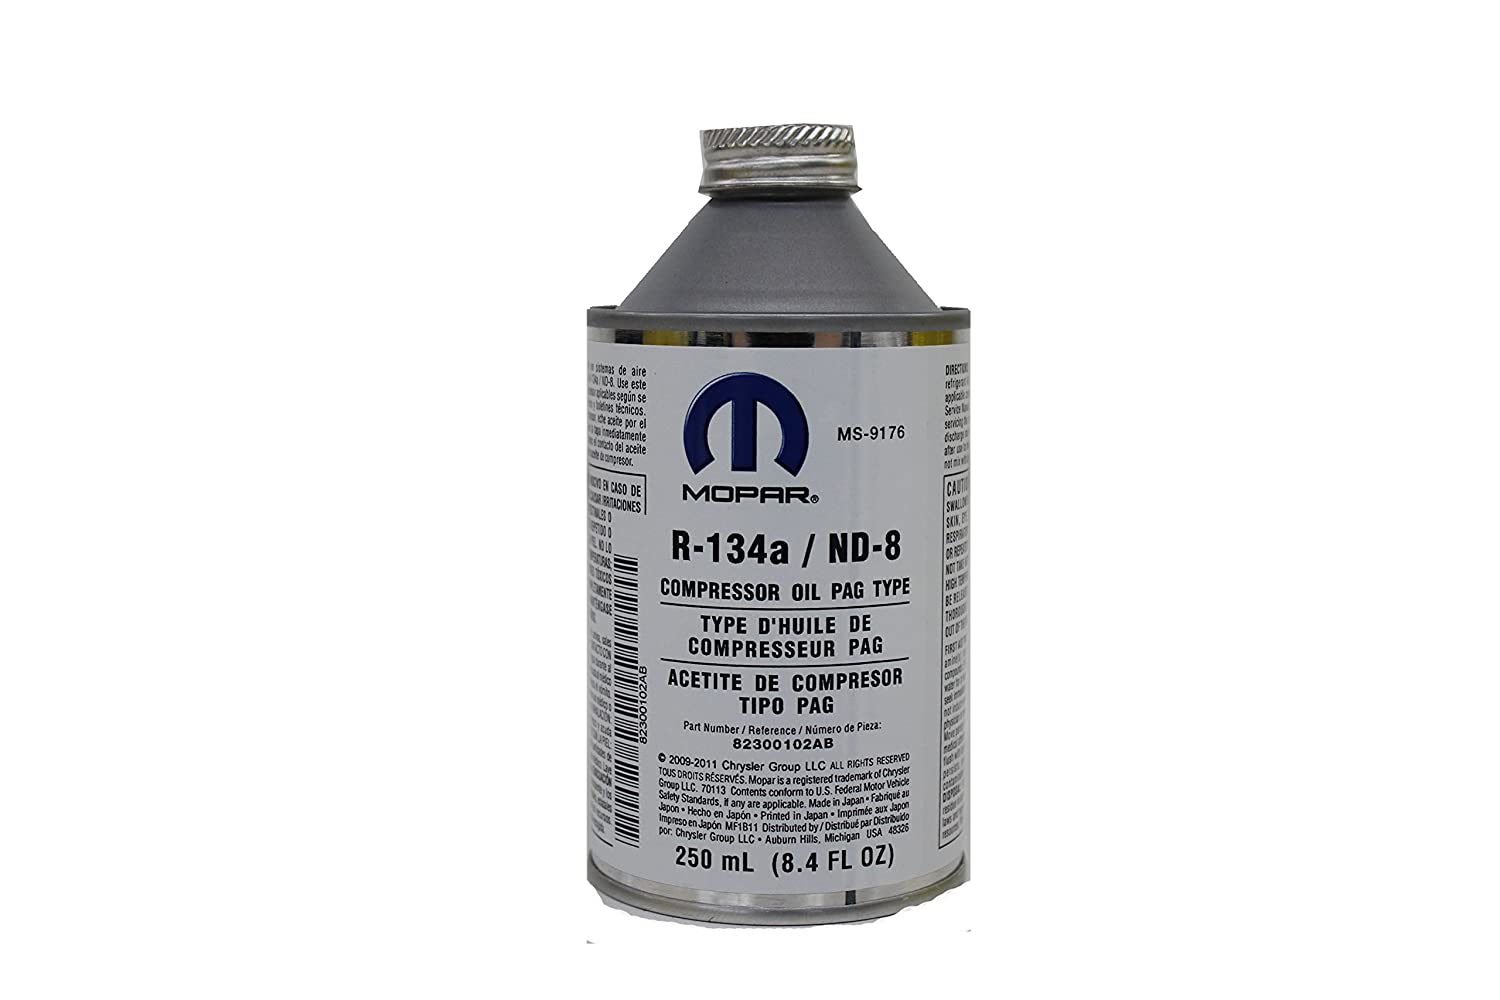 Genuine Chrysler Accessories (82300102AB) R-134a PAG Type Compressor Oil - 250 ml Can 68224150AA